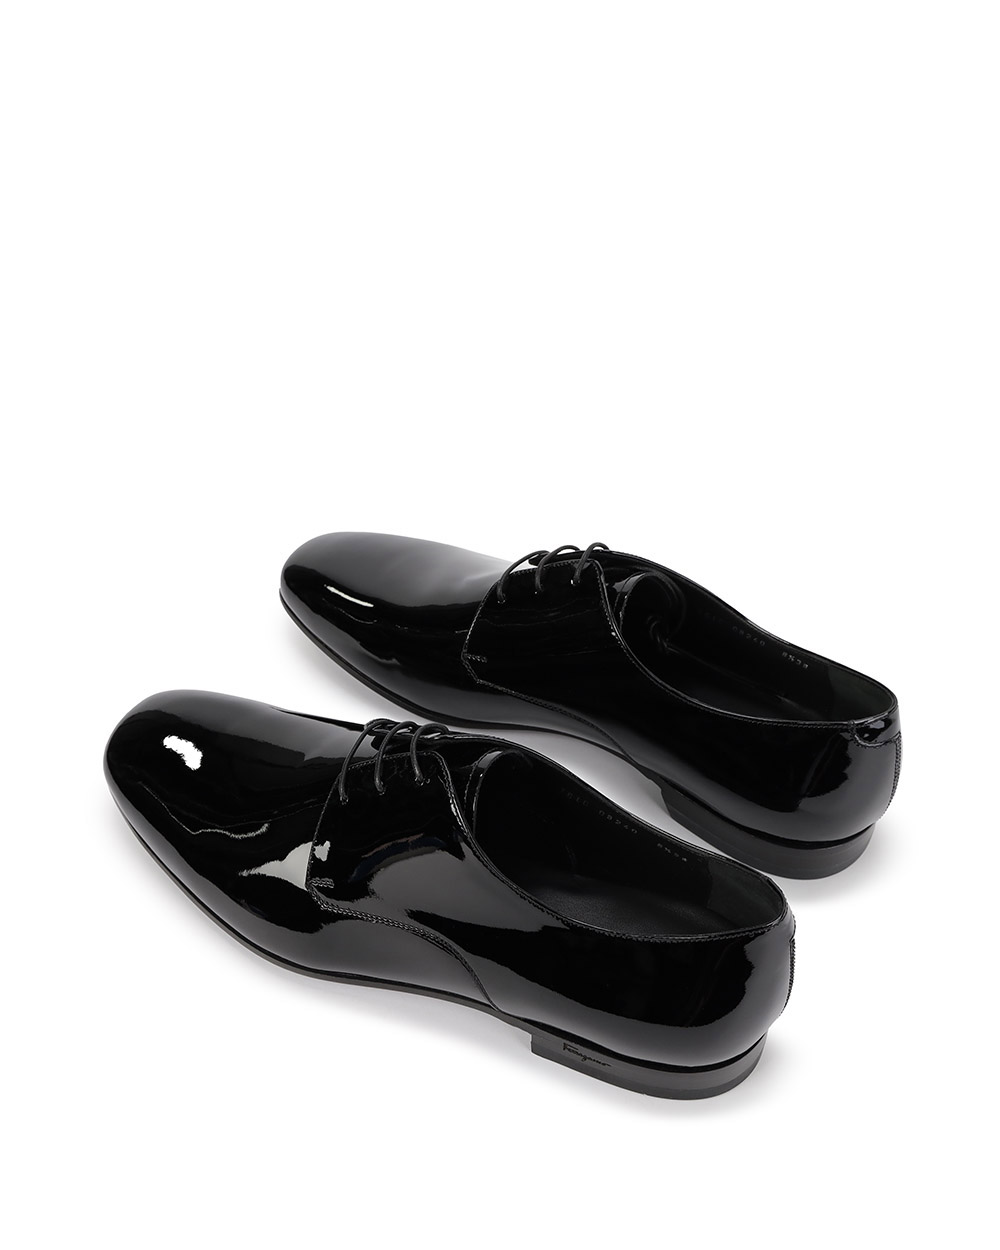 Patent Leather Oxford Shoes 2